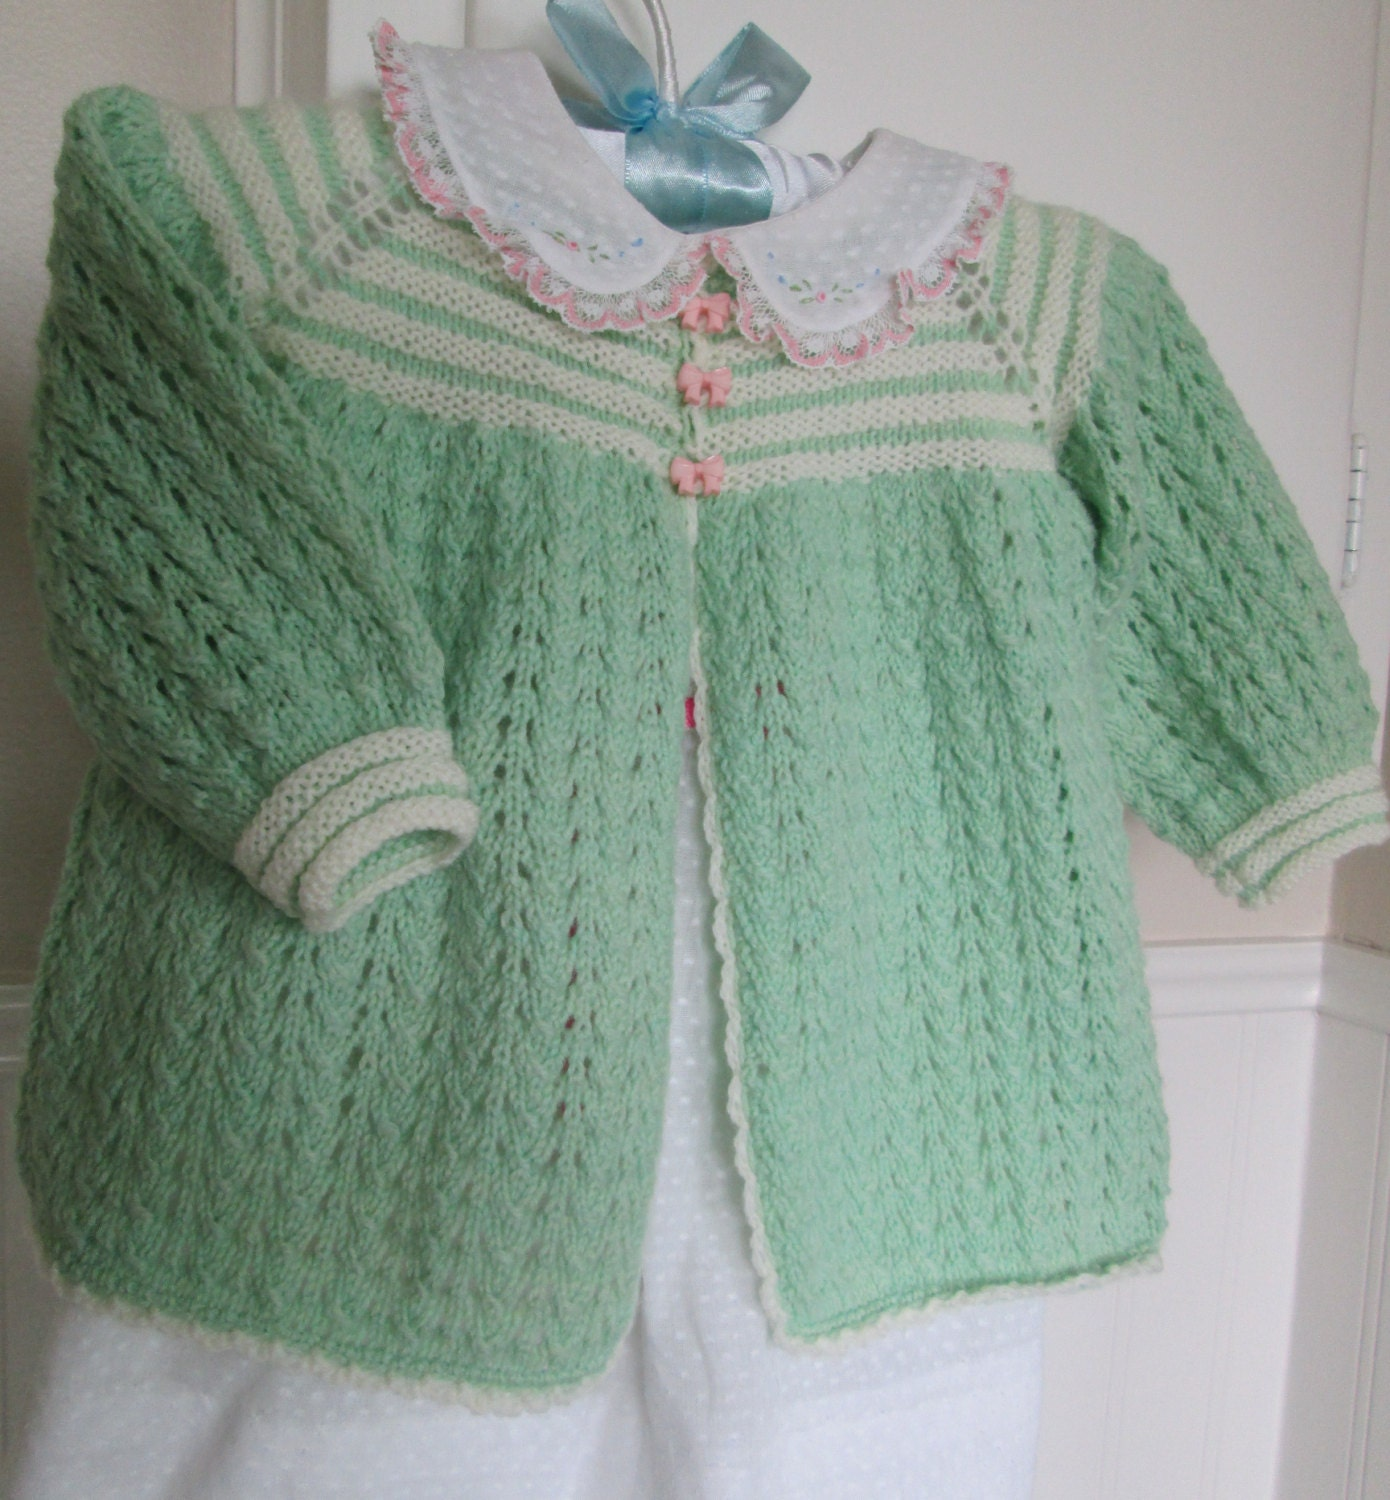 Knitting Baby Sweater Measurements : Baby girl sweater coat hand knit size m mint green and